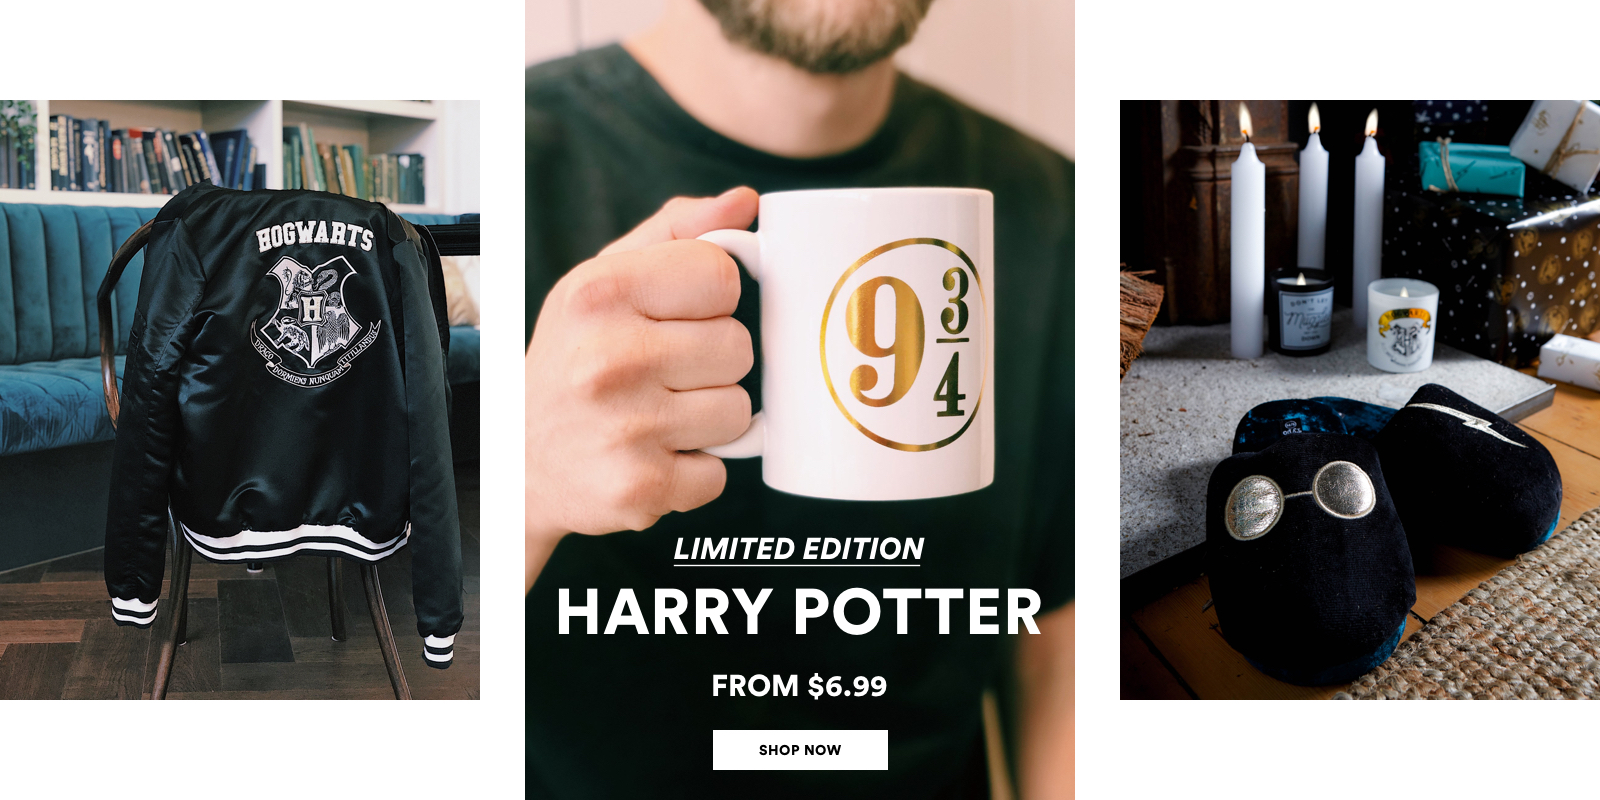 Limited Edition Harry Potter. From $6.99. Shop Now